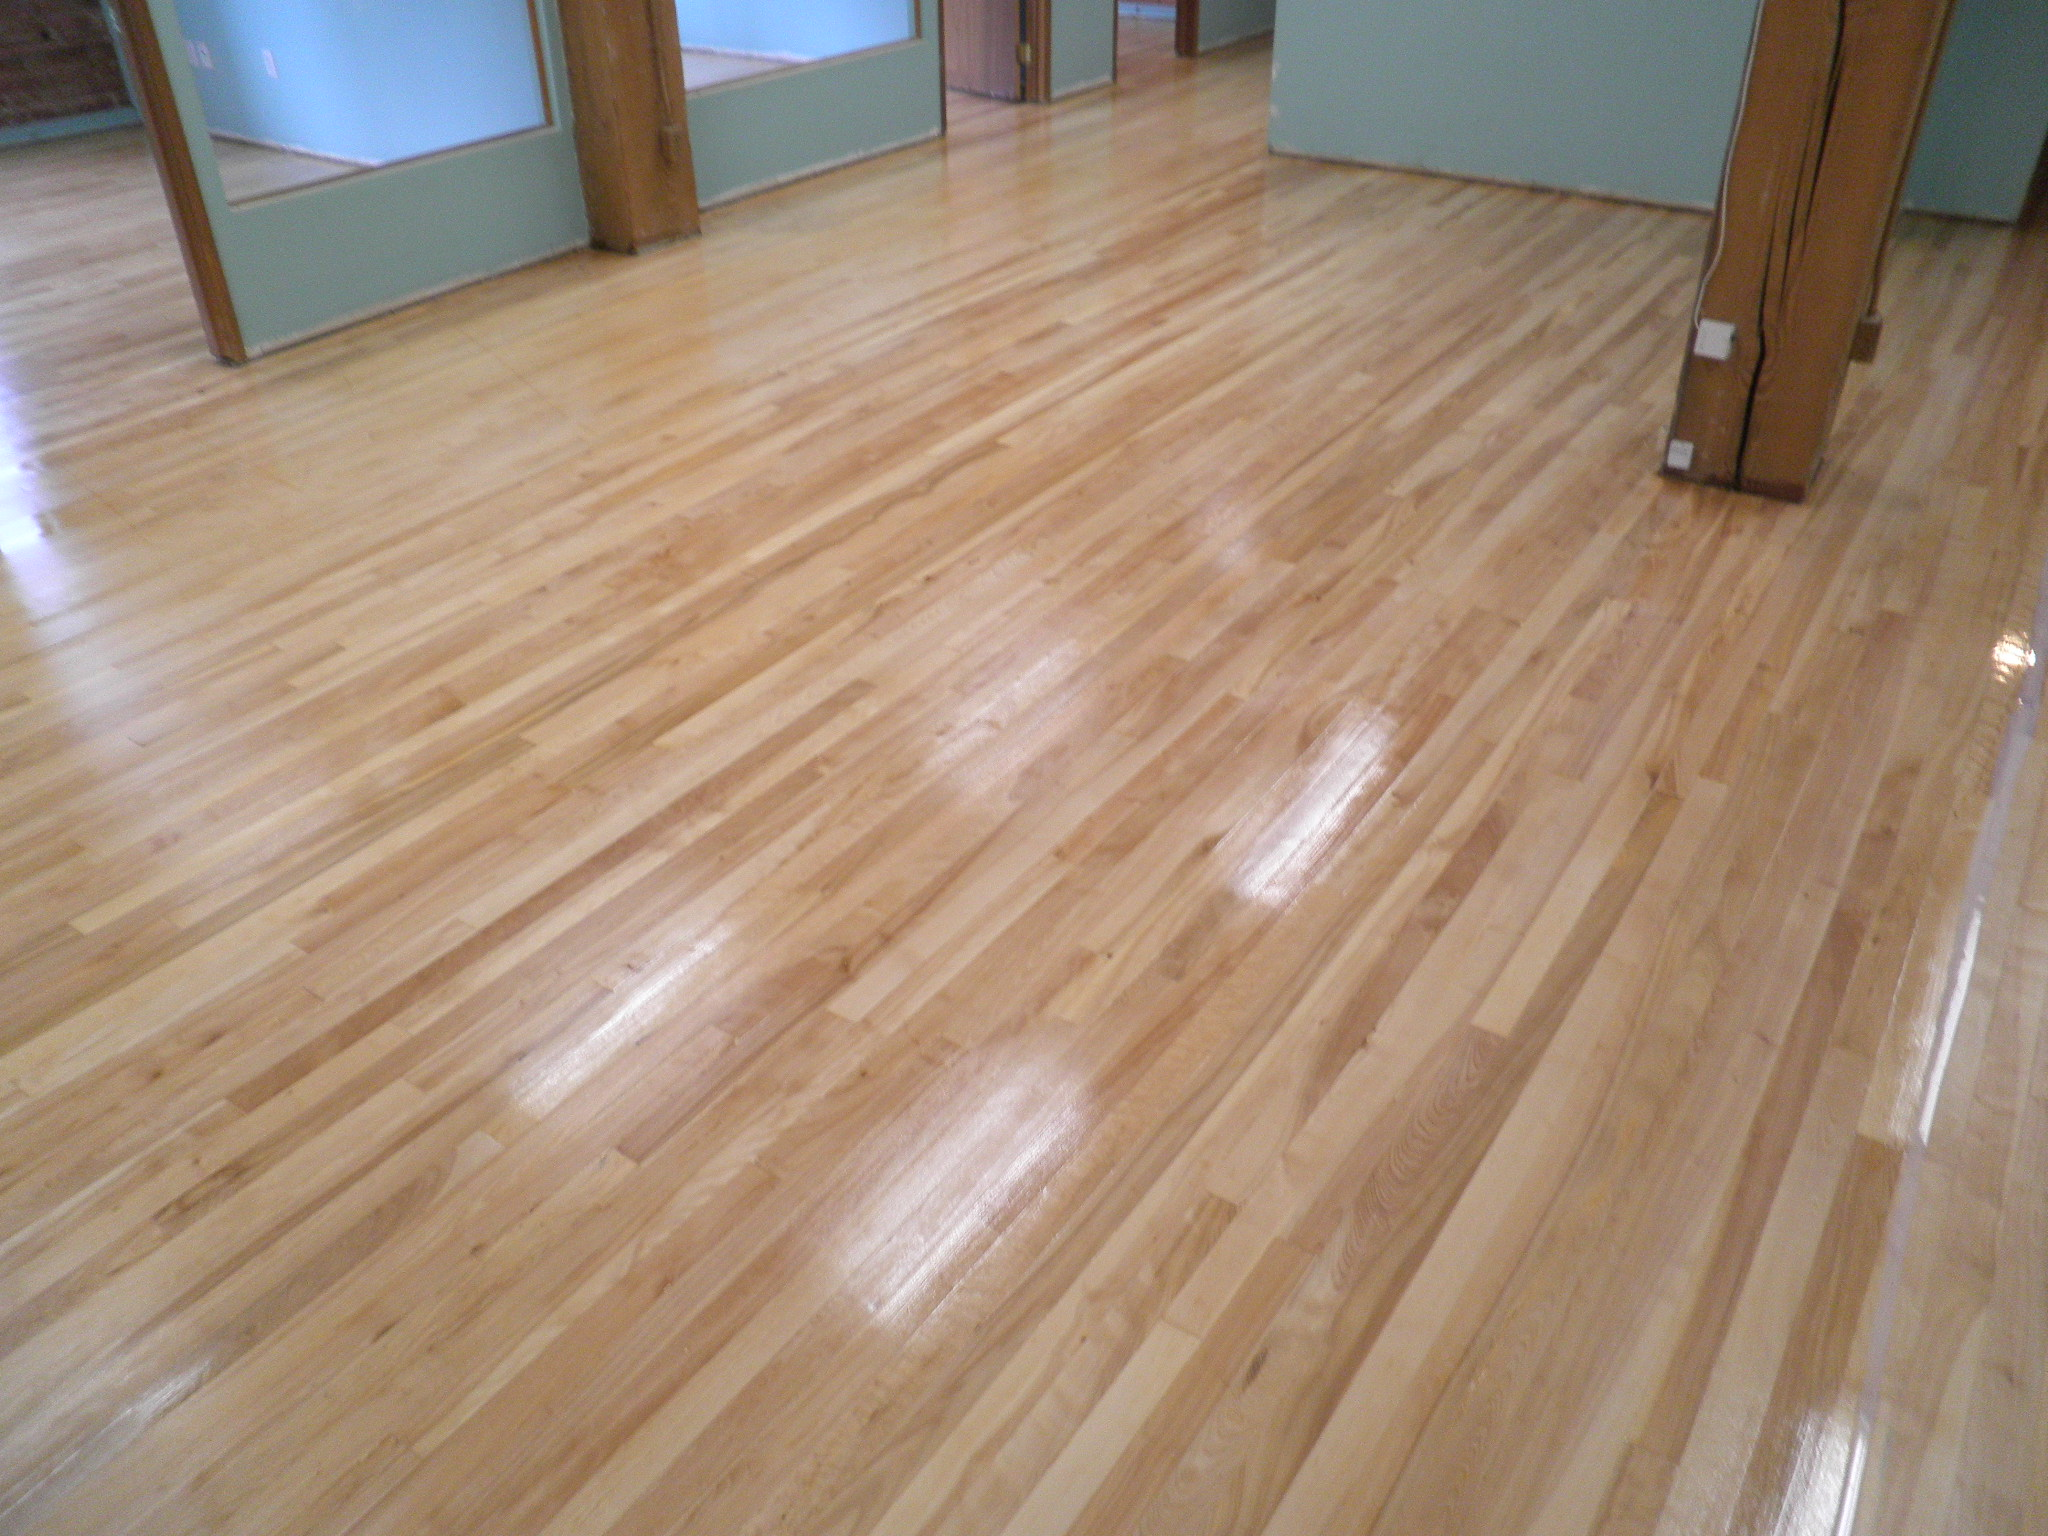 Refinishing wood floors excellent refinishing hardwood for Hardwood floor refinishing